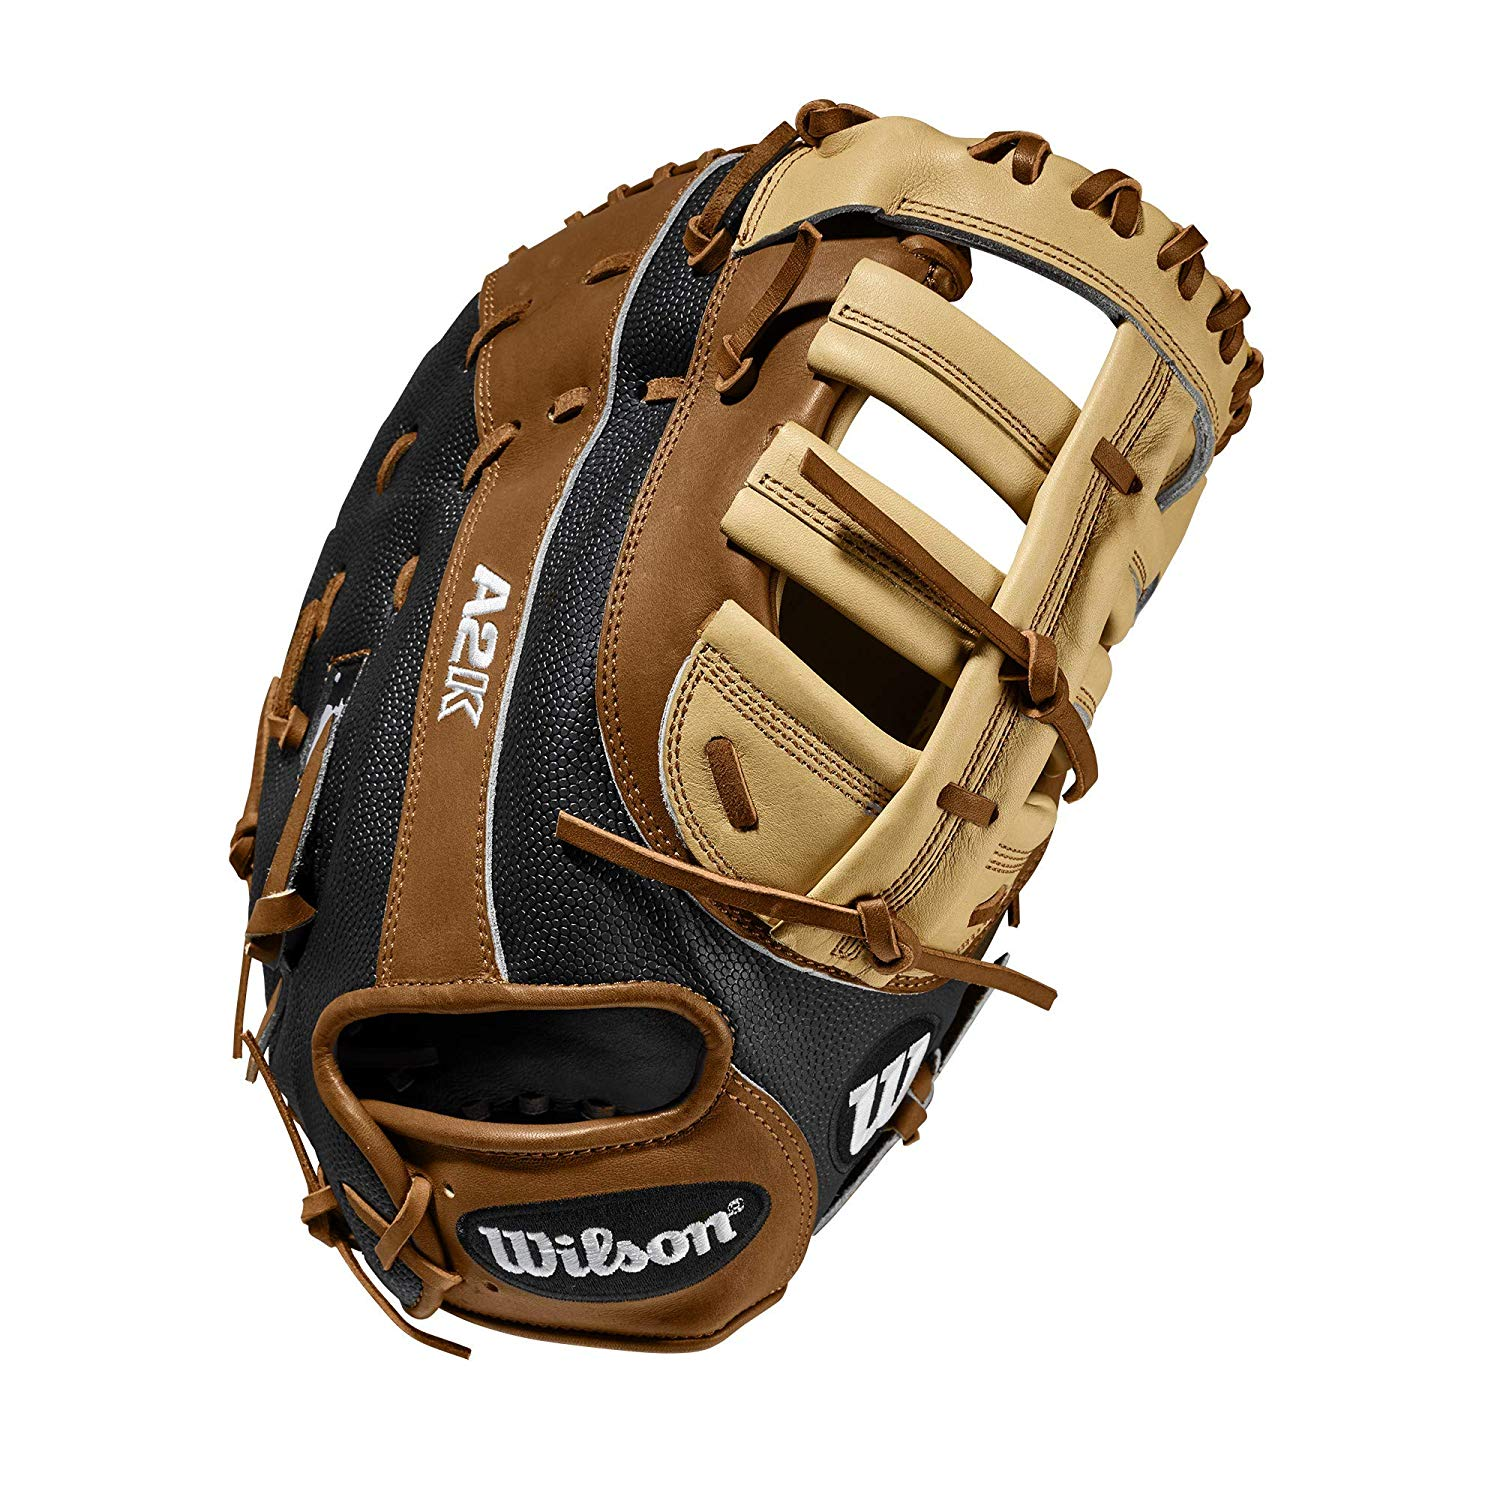 wilson-a2k-rb20-2820ss-first-base-mitt-12-25-right-hand-throw WTA2KRB202820SS-RightHandThrow Wilson 887768829759 Conventional w/ Open Back Web and three times more shaping to